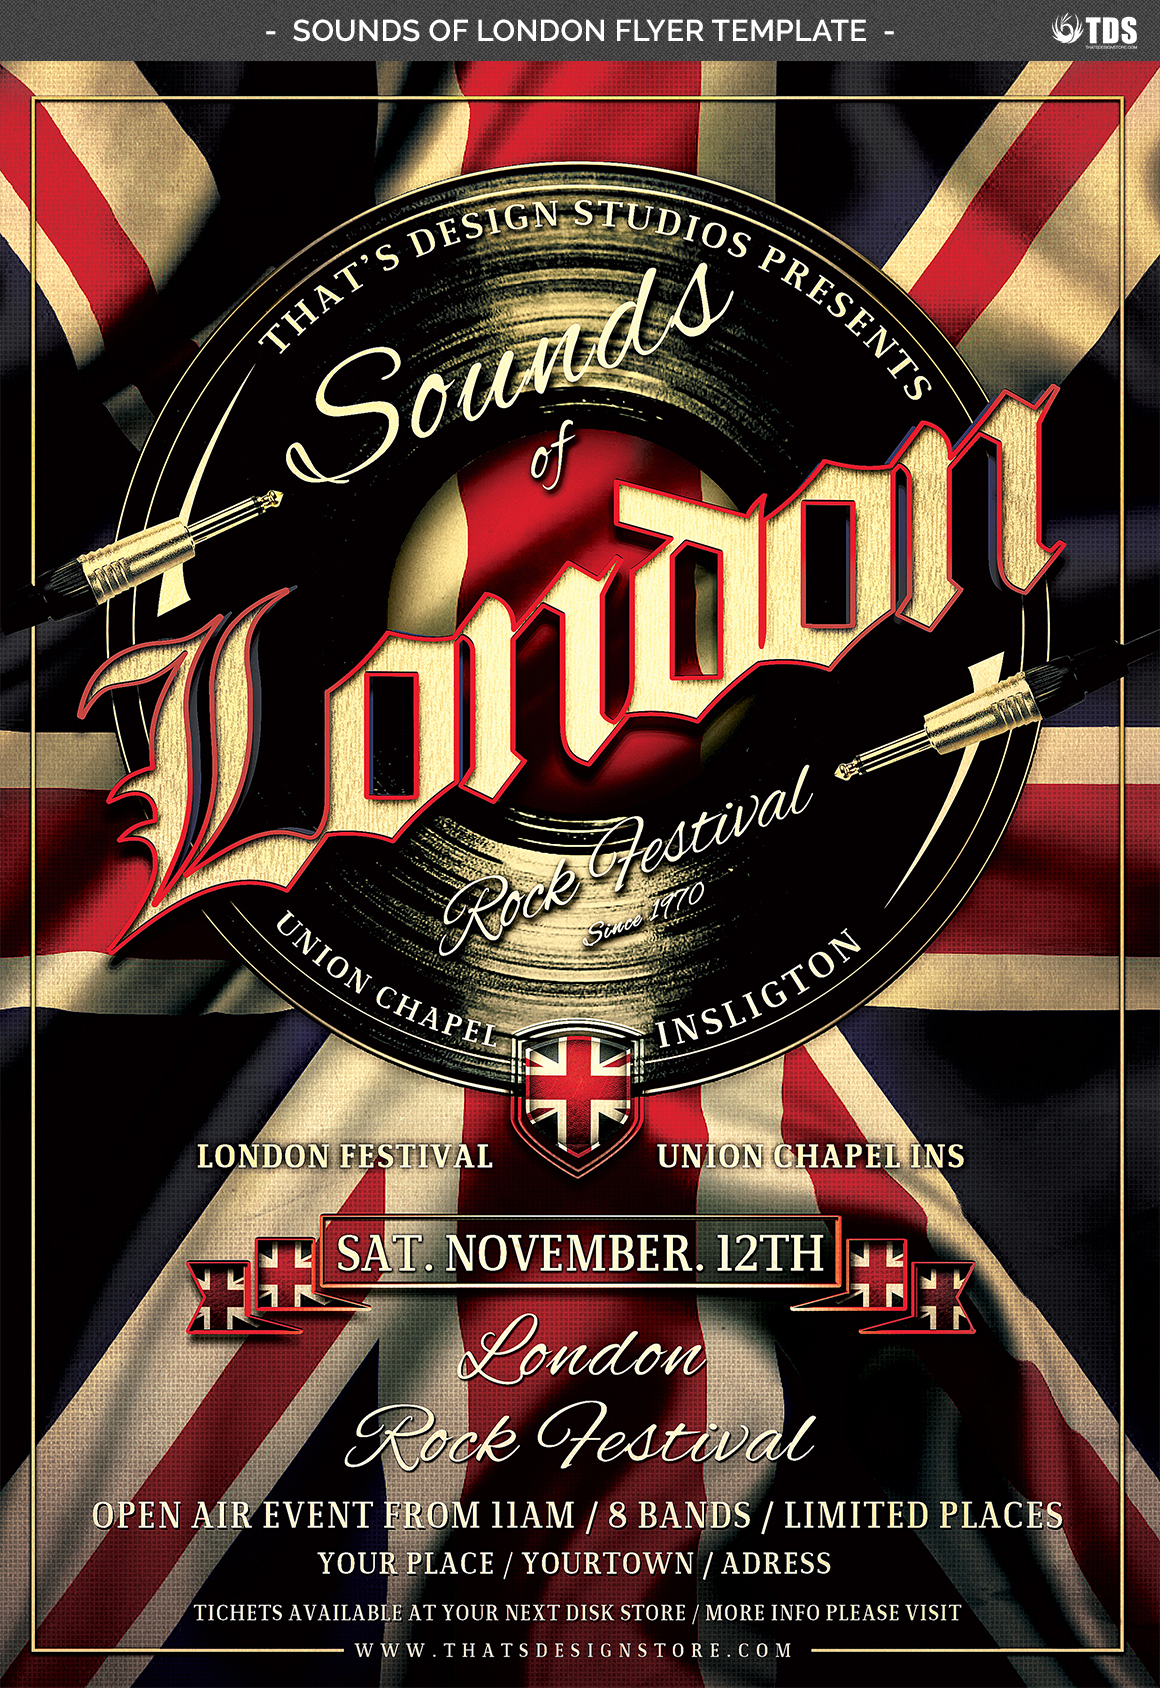 Sounds of London Flyer Template example image 5